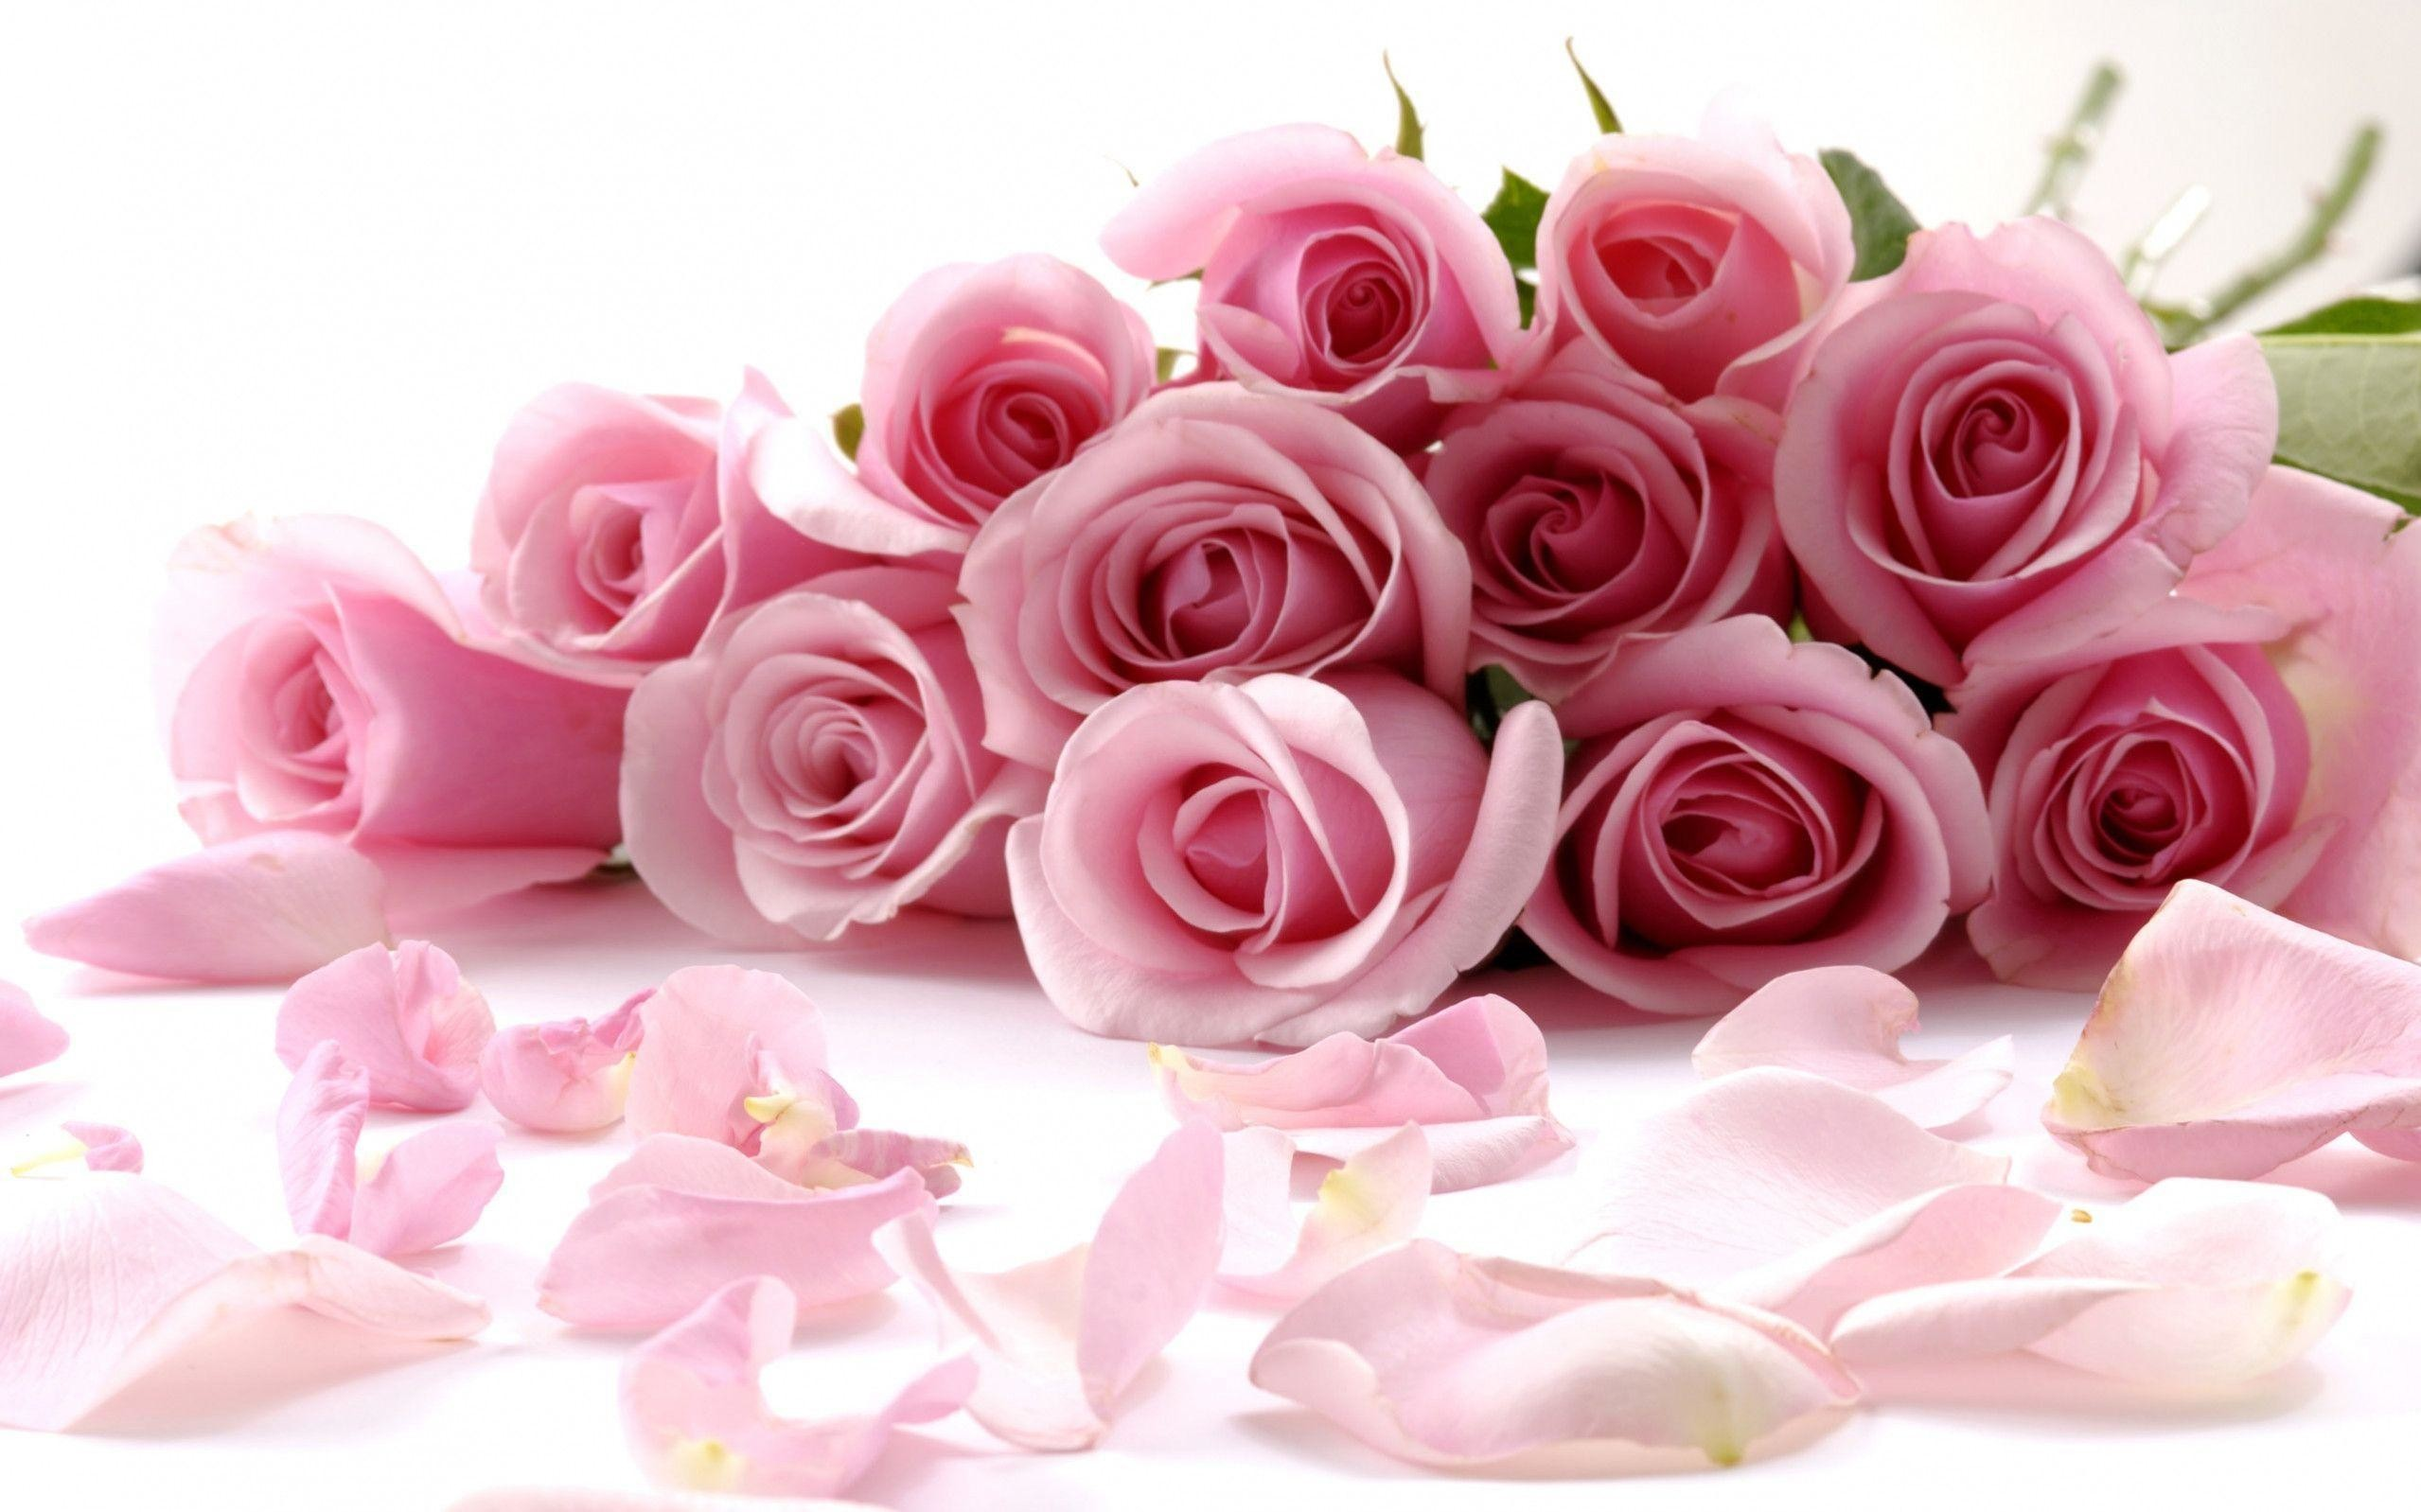 Res: 2558x1598, Images For > Wedding Flower Wallpaper